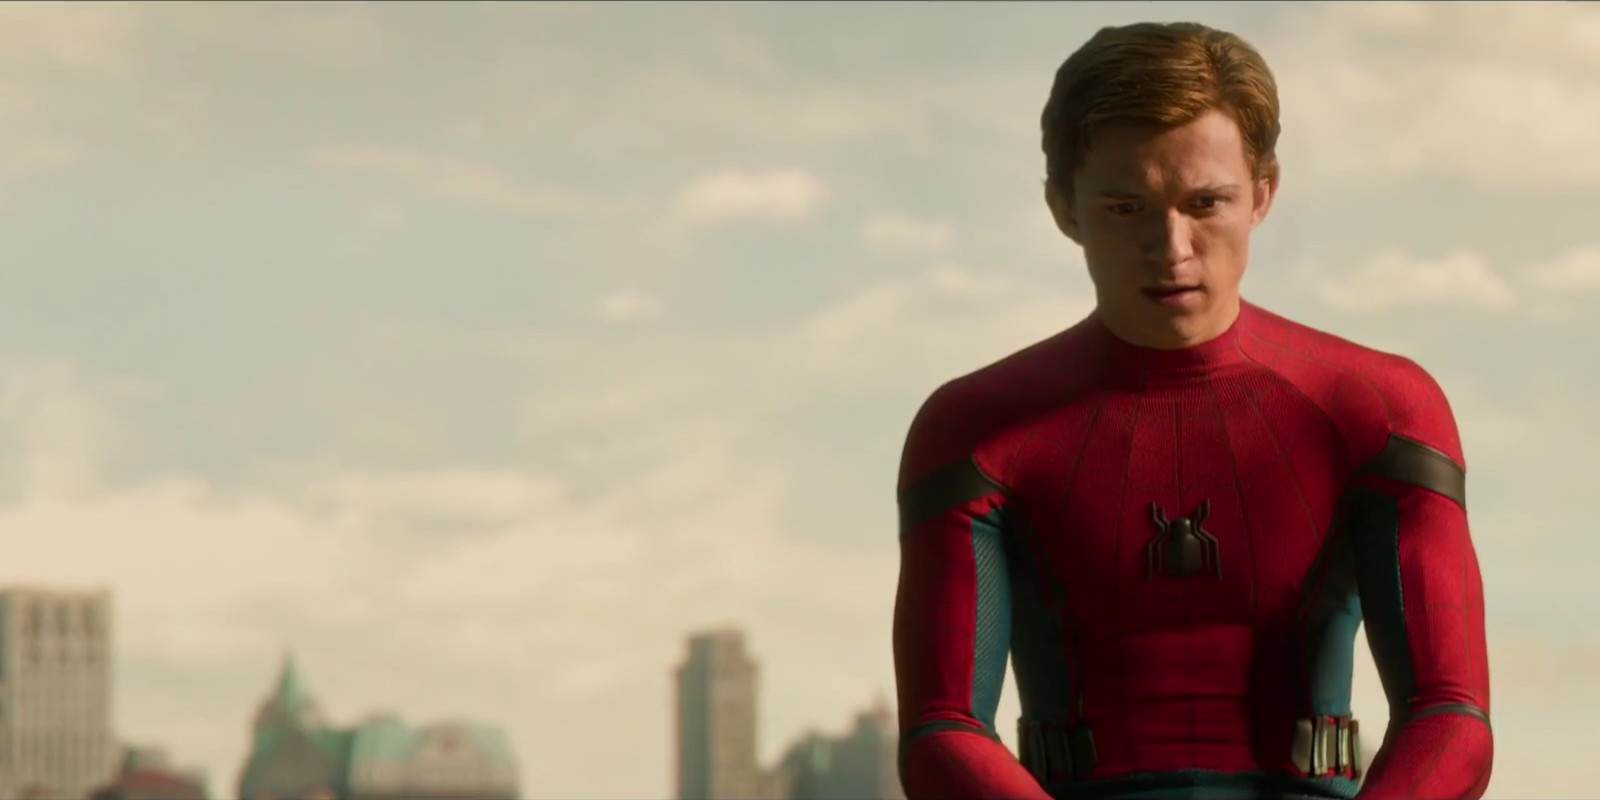 Tom Holland Says Spider-Man Is 'Most Relatable' Superhero